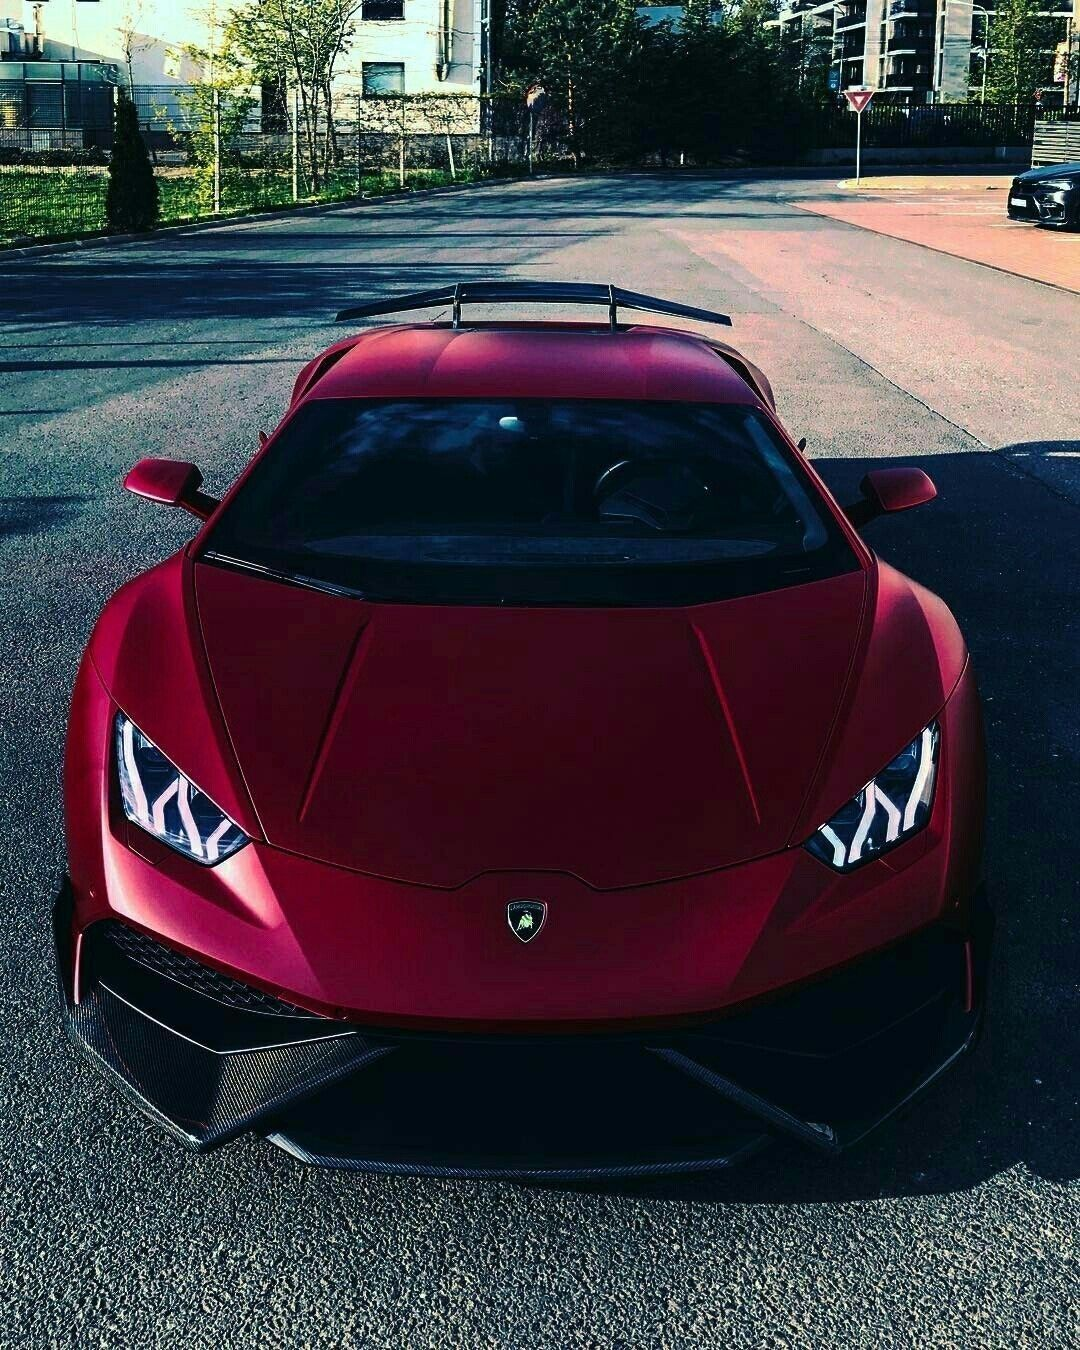 Pin By Joey Campbell On Luxury Cars Lamborghini Cars Sports Cars Luxury Best Luxury Cars